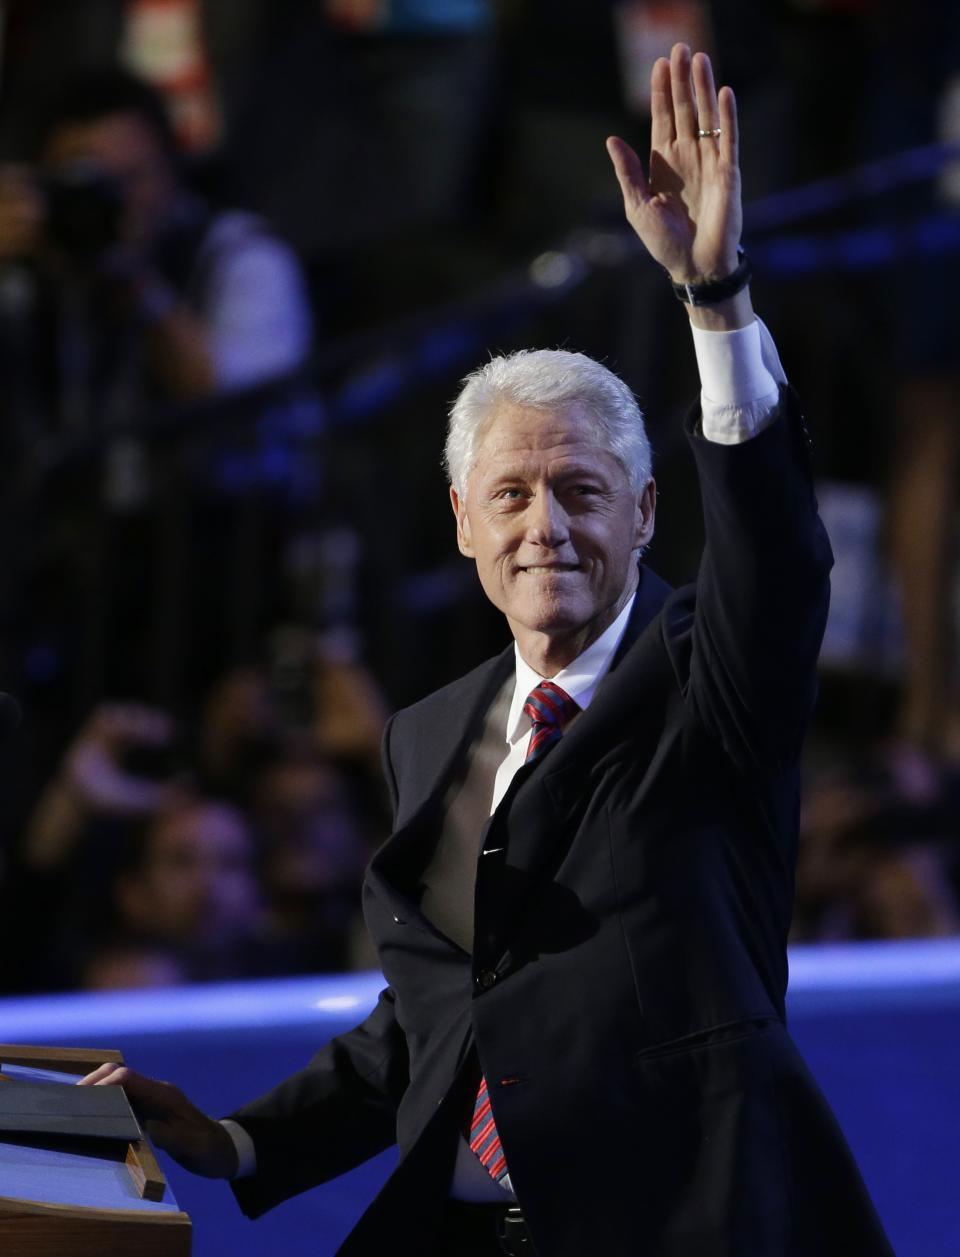 Former President Bill Clinton waves to delegates at the Democratic National Convention in Charlotte, N.C., on Wednesday, Sept. 5, 2012. (AP Photo/Lynne Sladky)